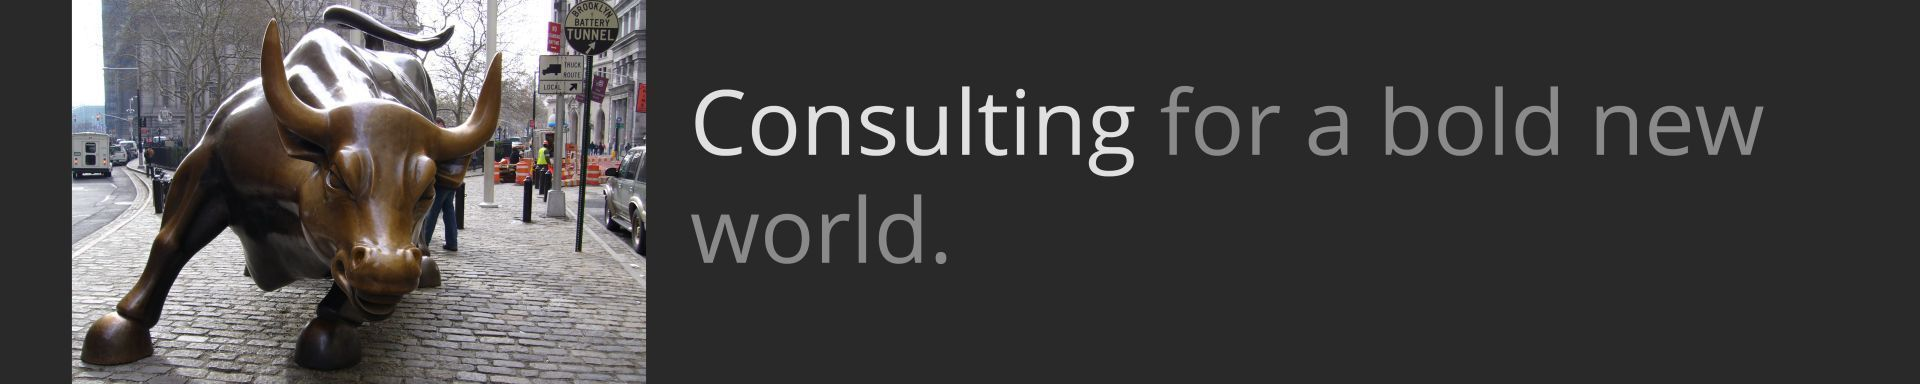 HeaderImage_consulting_new_world